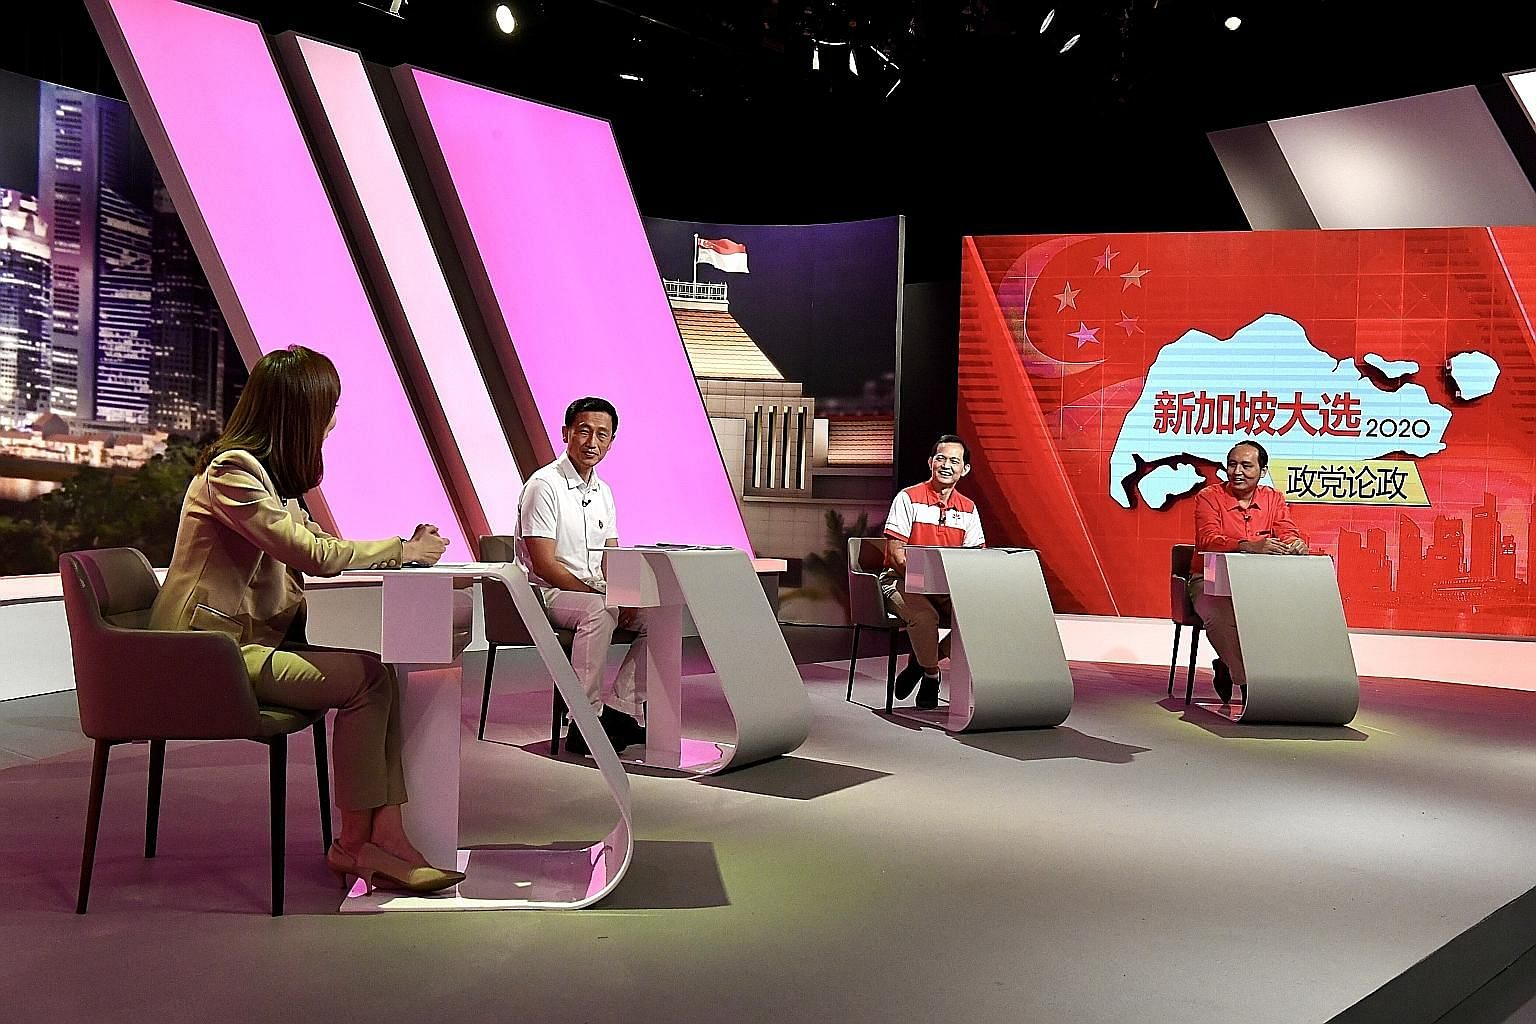 (From left) Mediacorp presenter Tung Soo Hua moderating a live televised political debate in Mandarin with the PAP's Ong Ye Kung, PSP's Leong Mun Wai and SDP's Brian Lim.